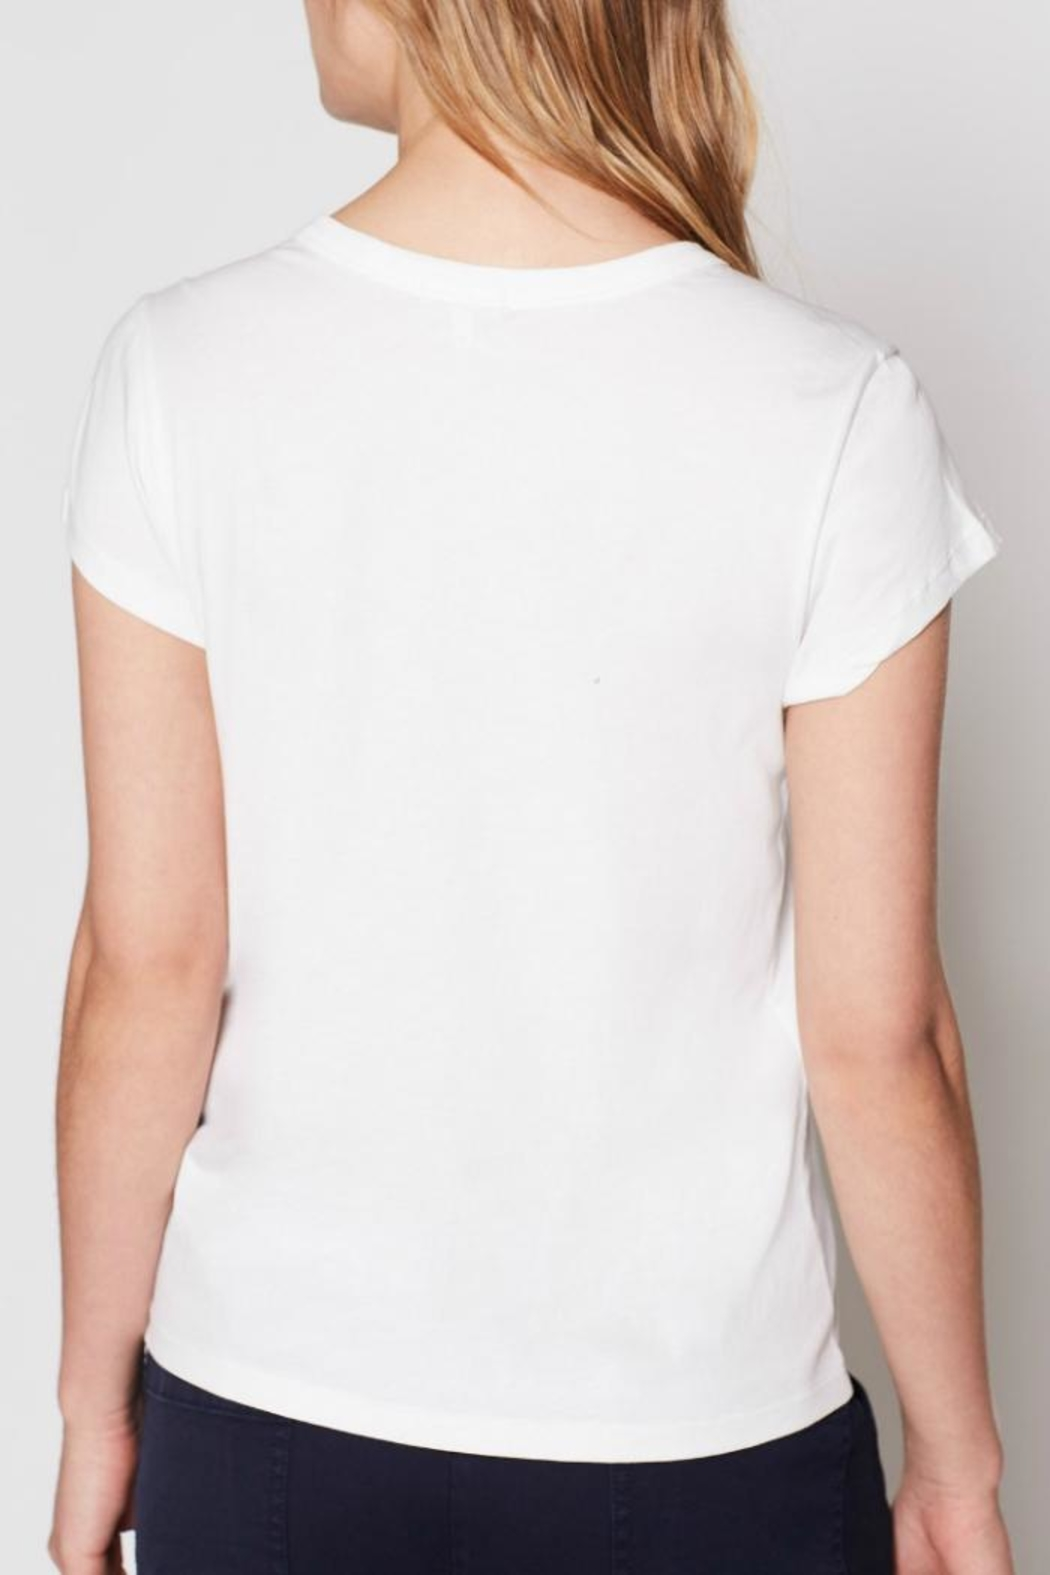 Joie Delzia B T-Shirt - Front Full Image